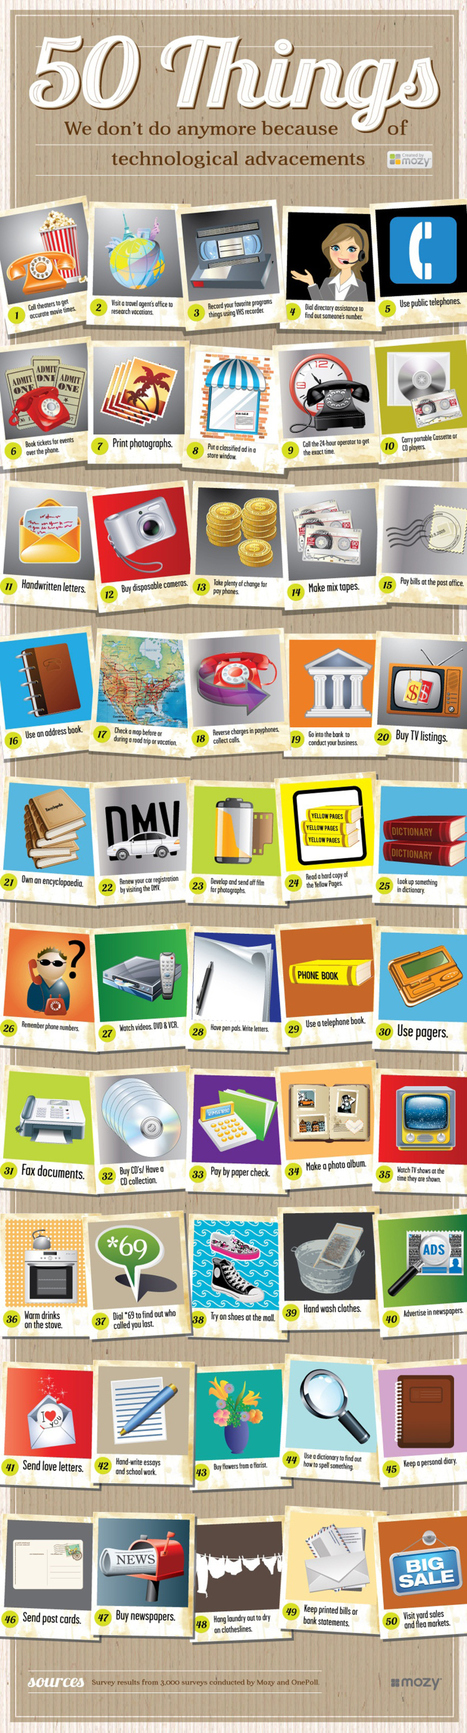 50 Things We No Longer Do Because Of Tech Advancements [Infographic] | :: The 4th Era :: | Scoop.it